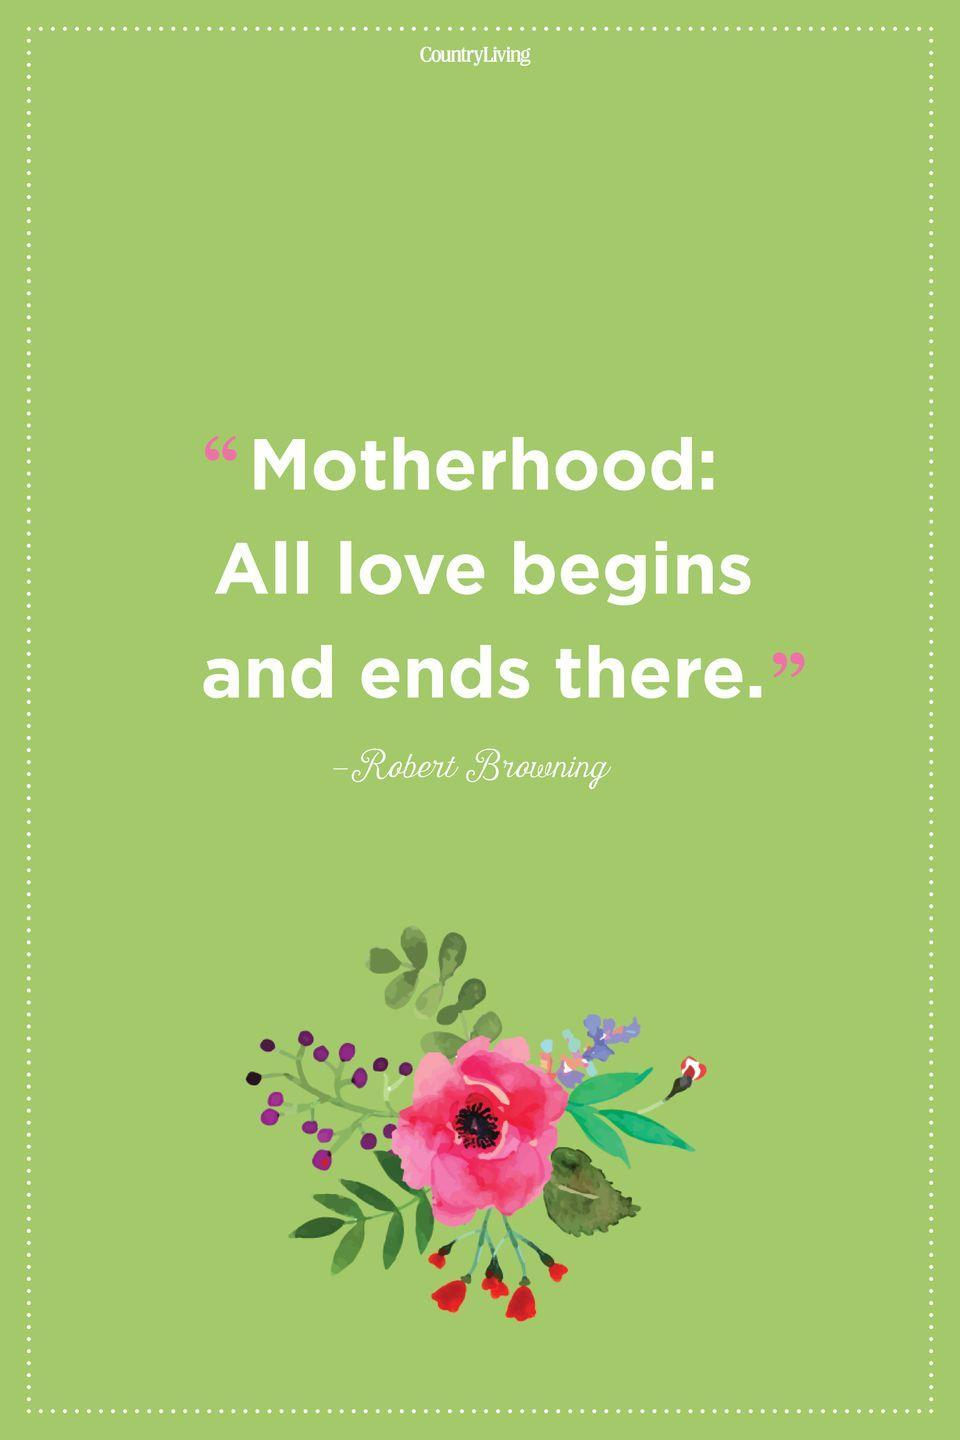 "<p>""Motherhood: All love begins and ends there.""</p>"